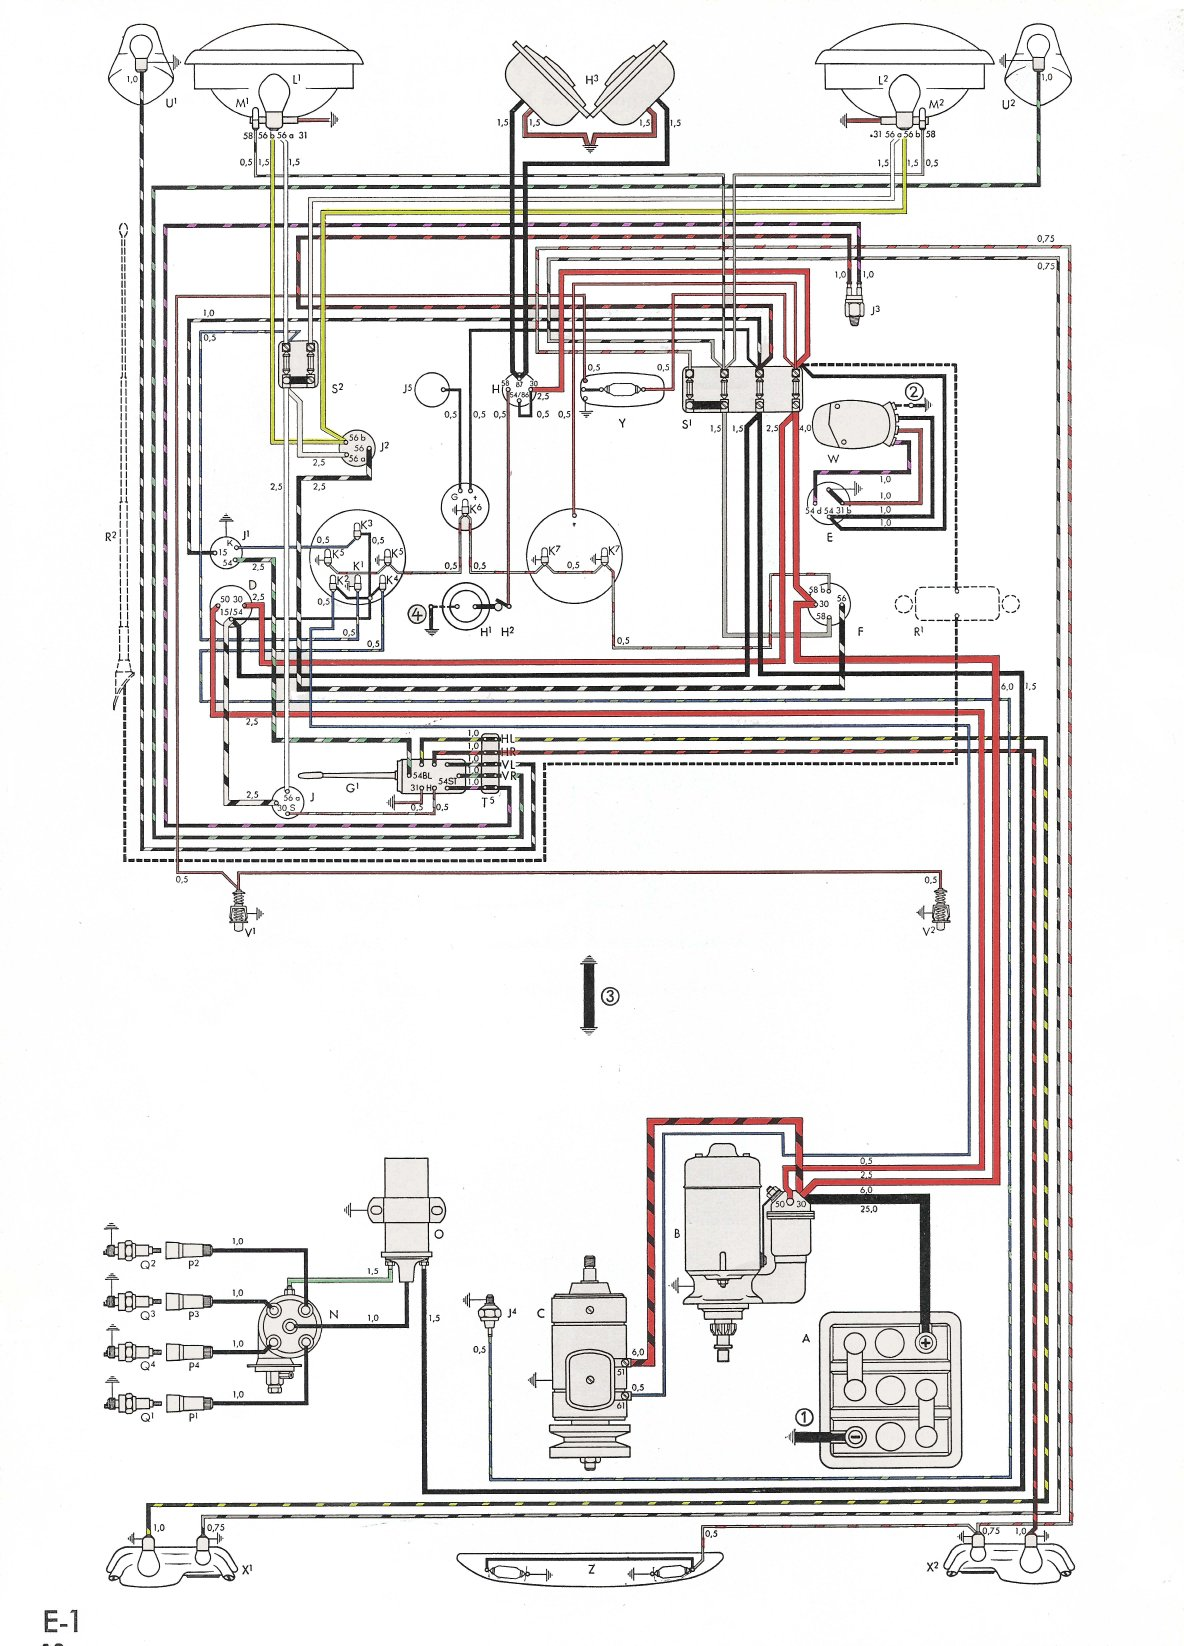 thesamba.com :: karmann ghia wiring diagrams 74 karmann ghia wiring diagram #14